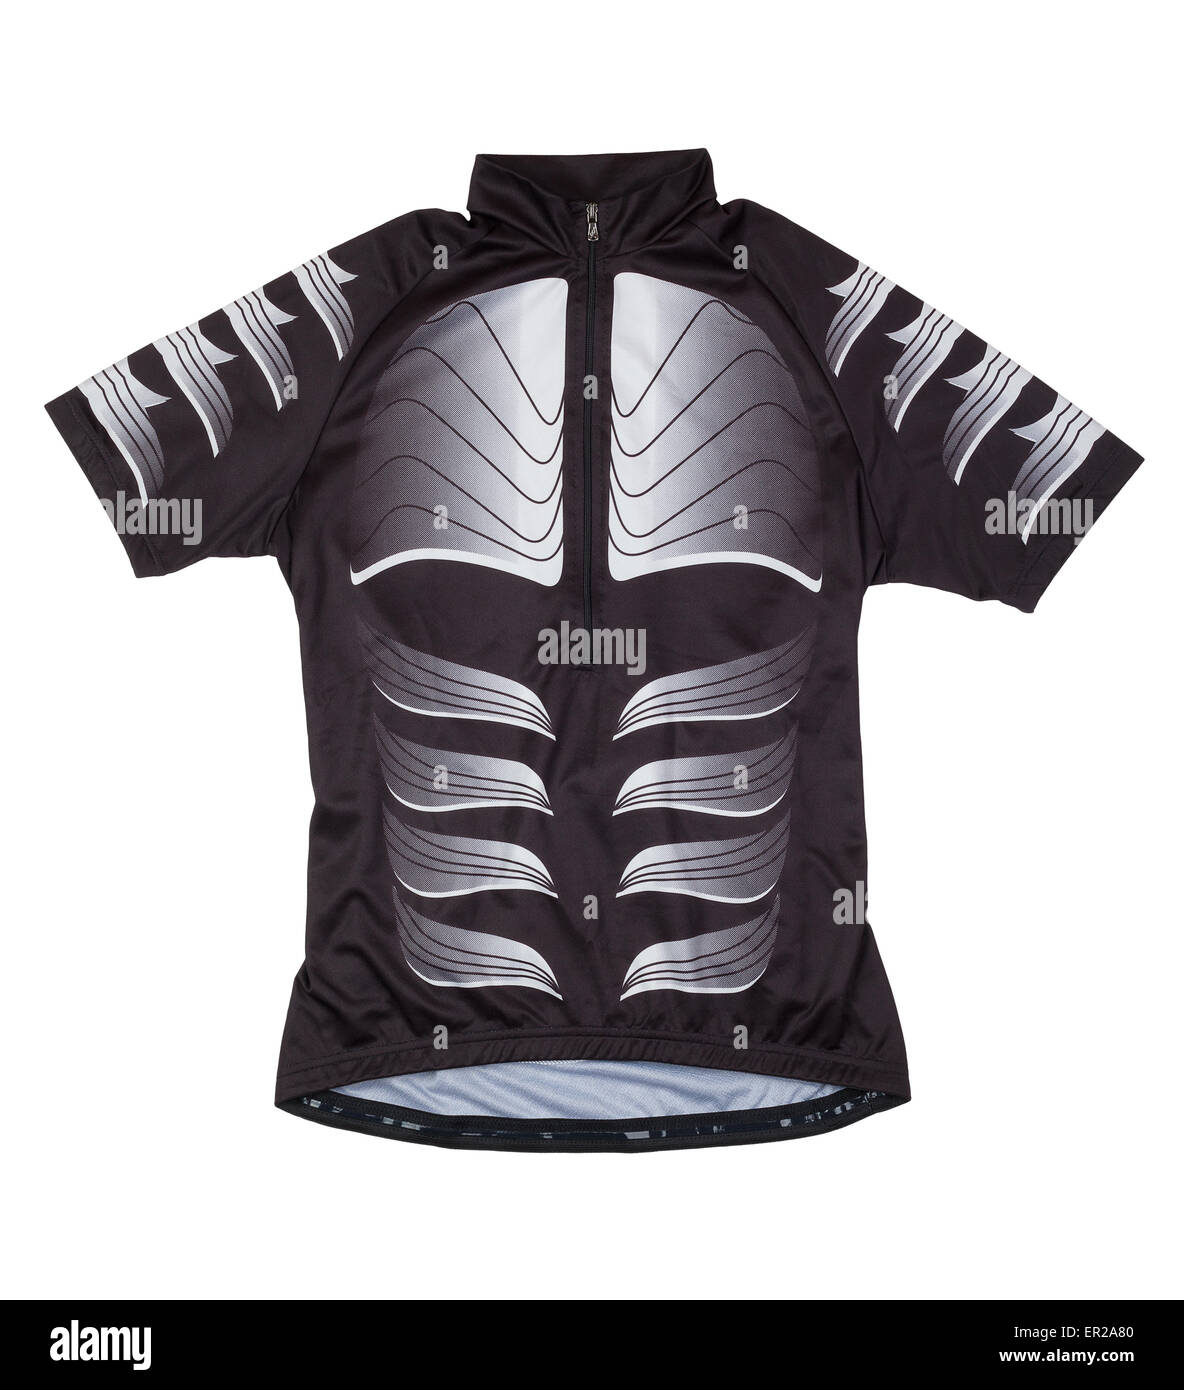 cycling vest isolated - Stock Image